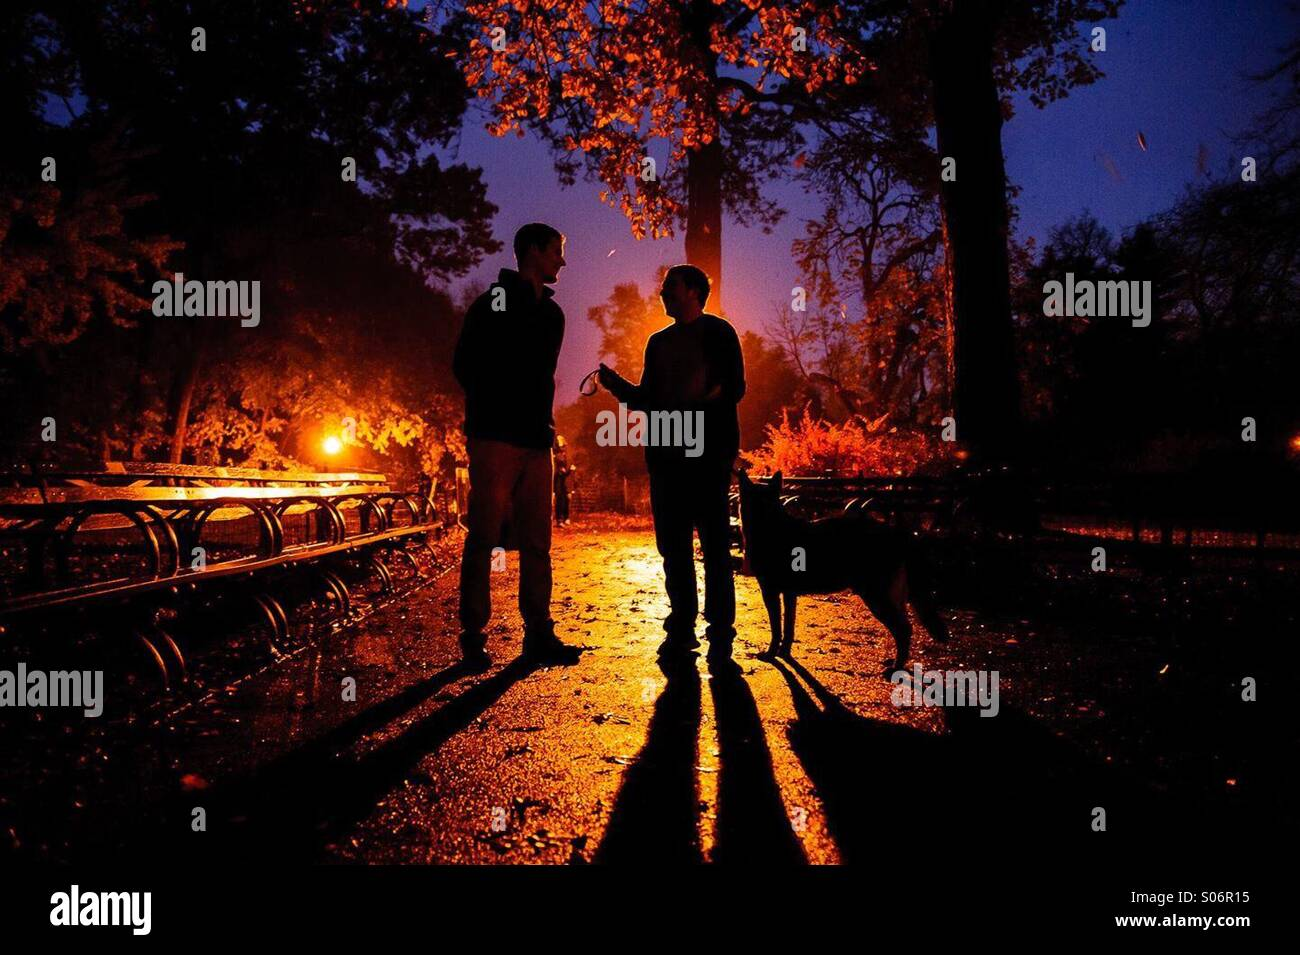 Two men converse on a New York City autumn night at strawberry fields in Central Park. - Stock Image